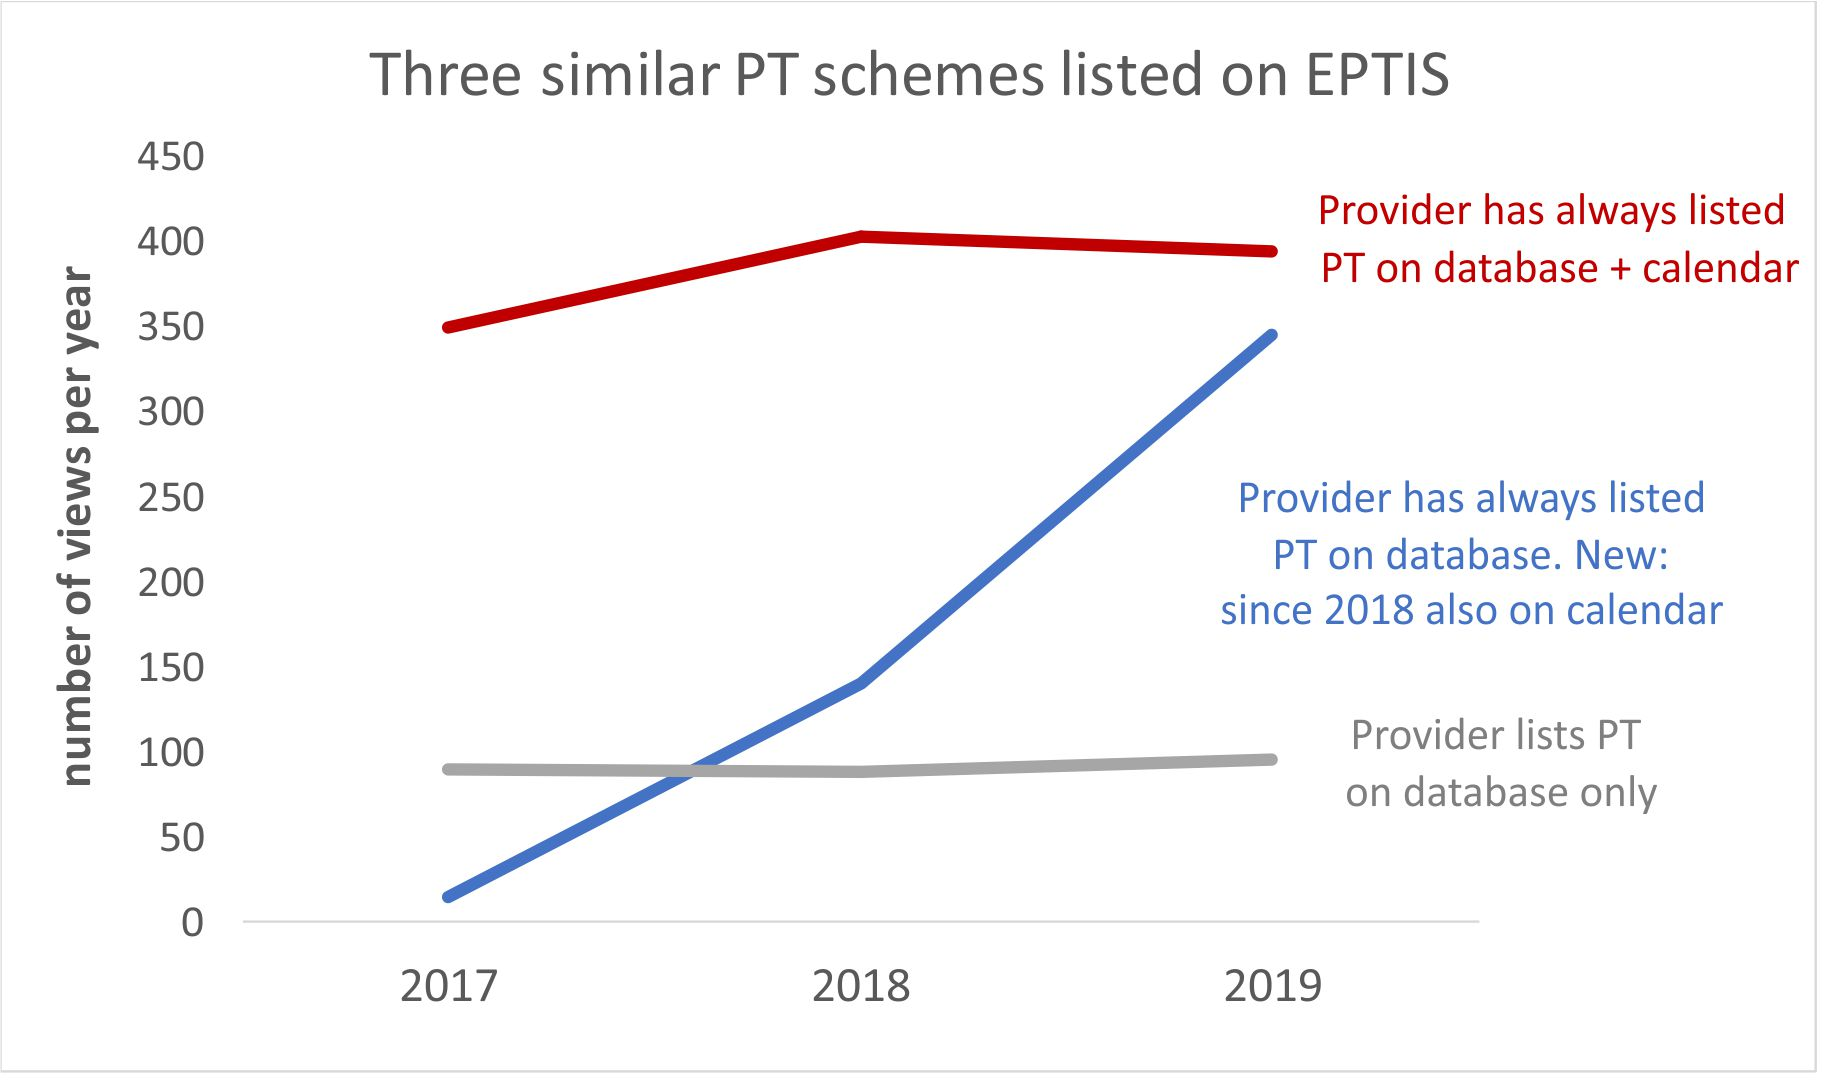 A comparison of (unique) visitor numbers for three PT scheme factsheets on the EPTIS database